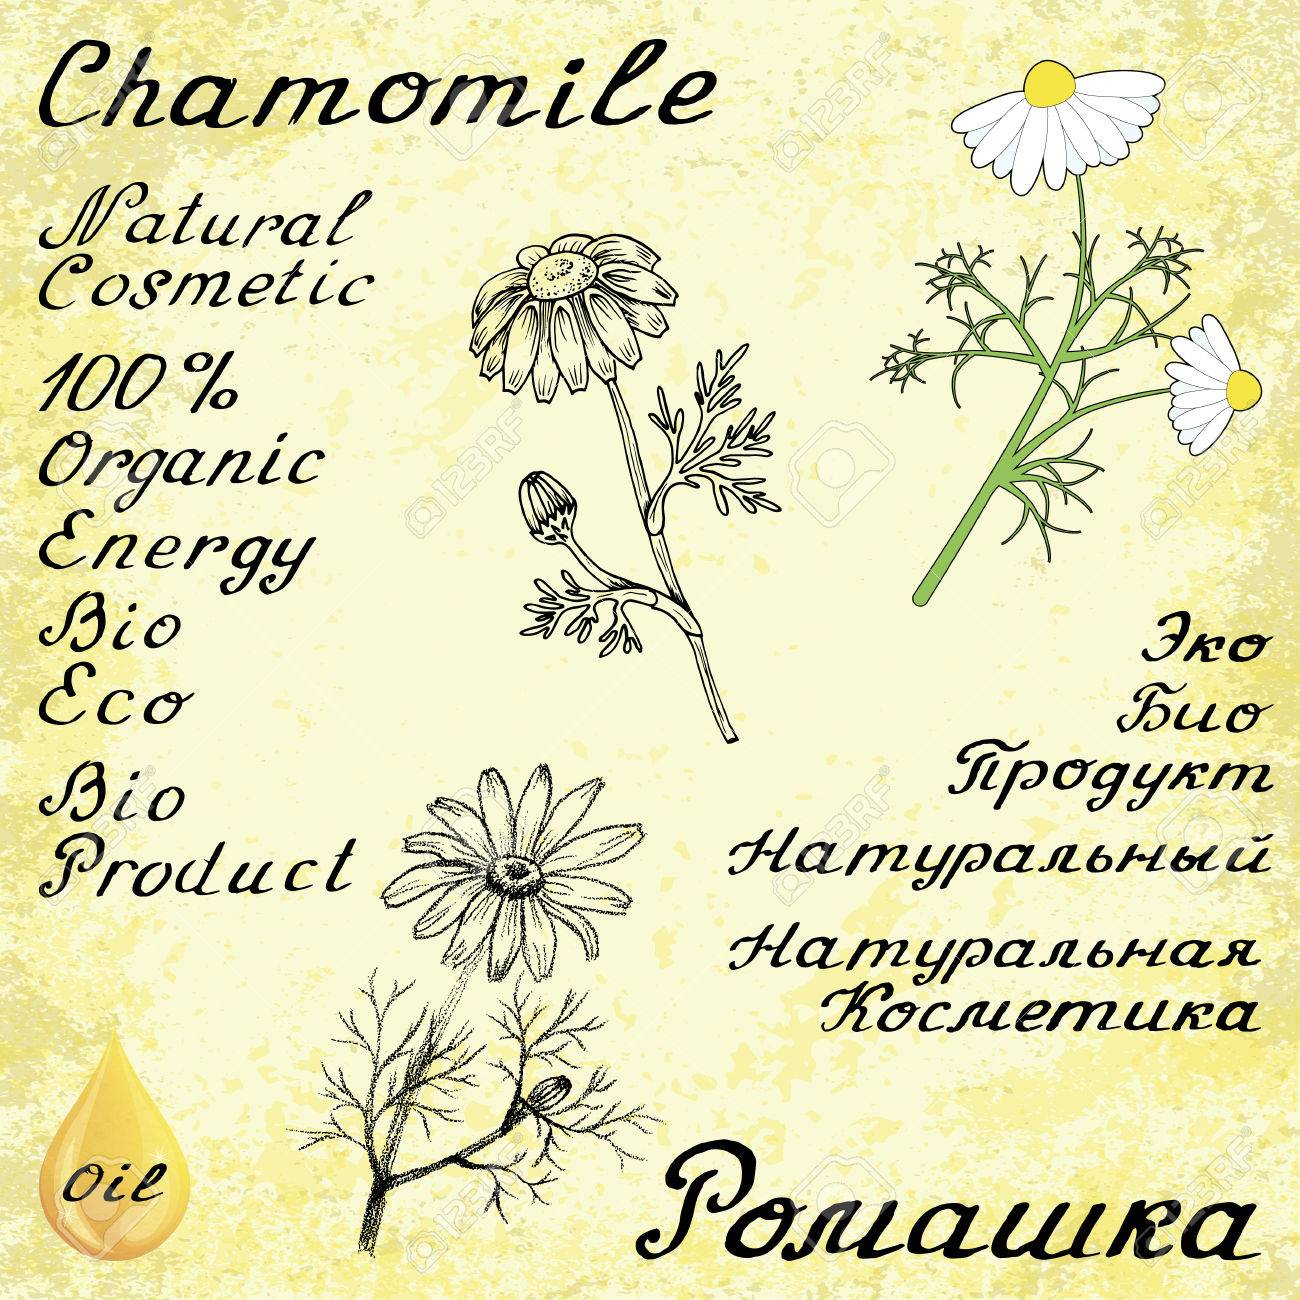 Chamomile   English and Russian texts  Eco Friendly  For labels,